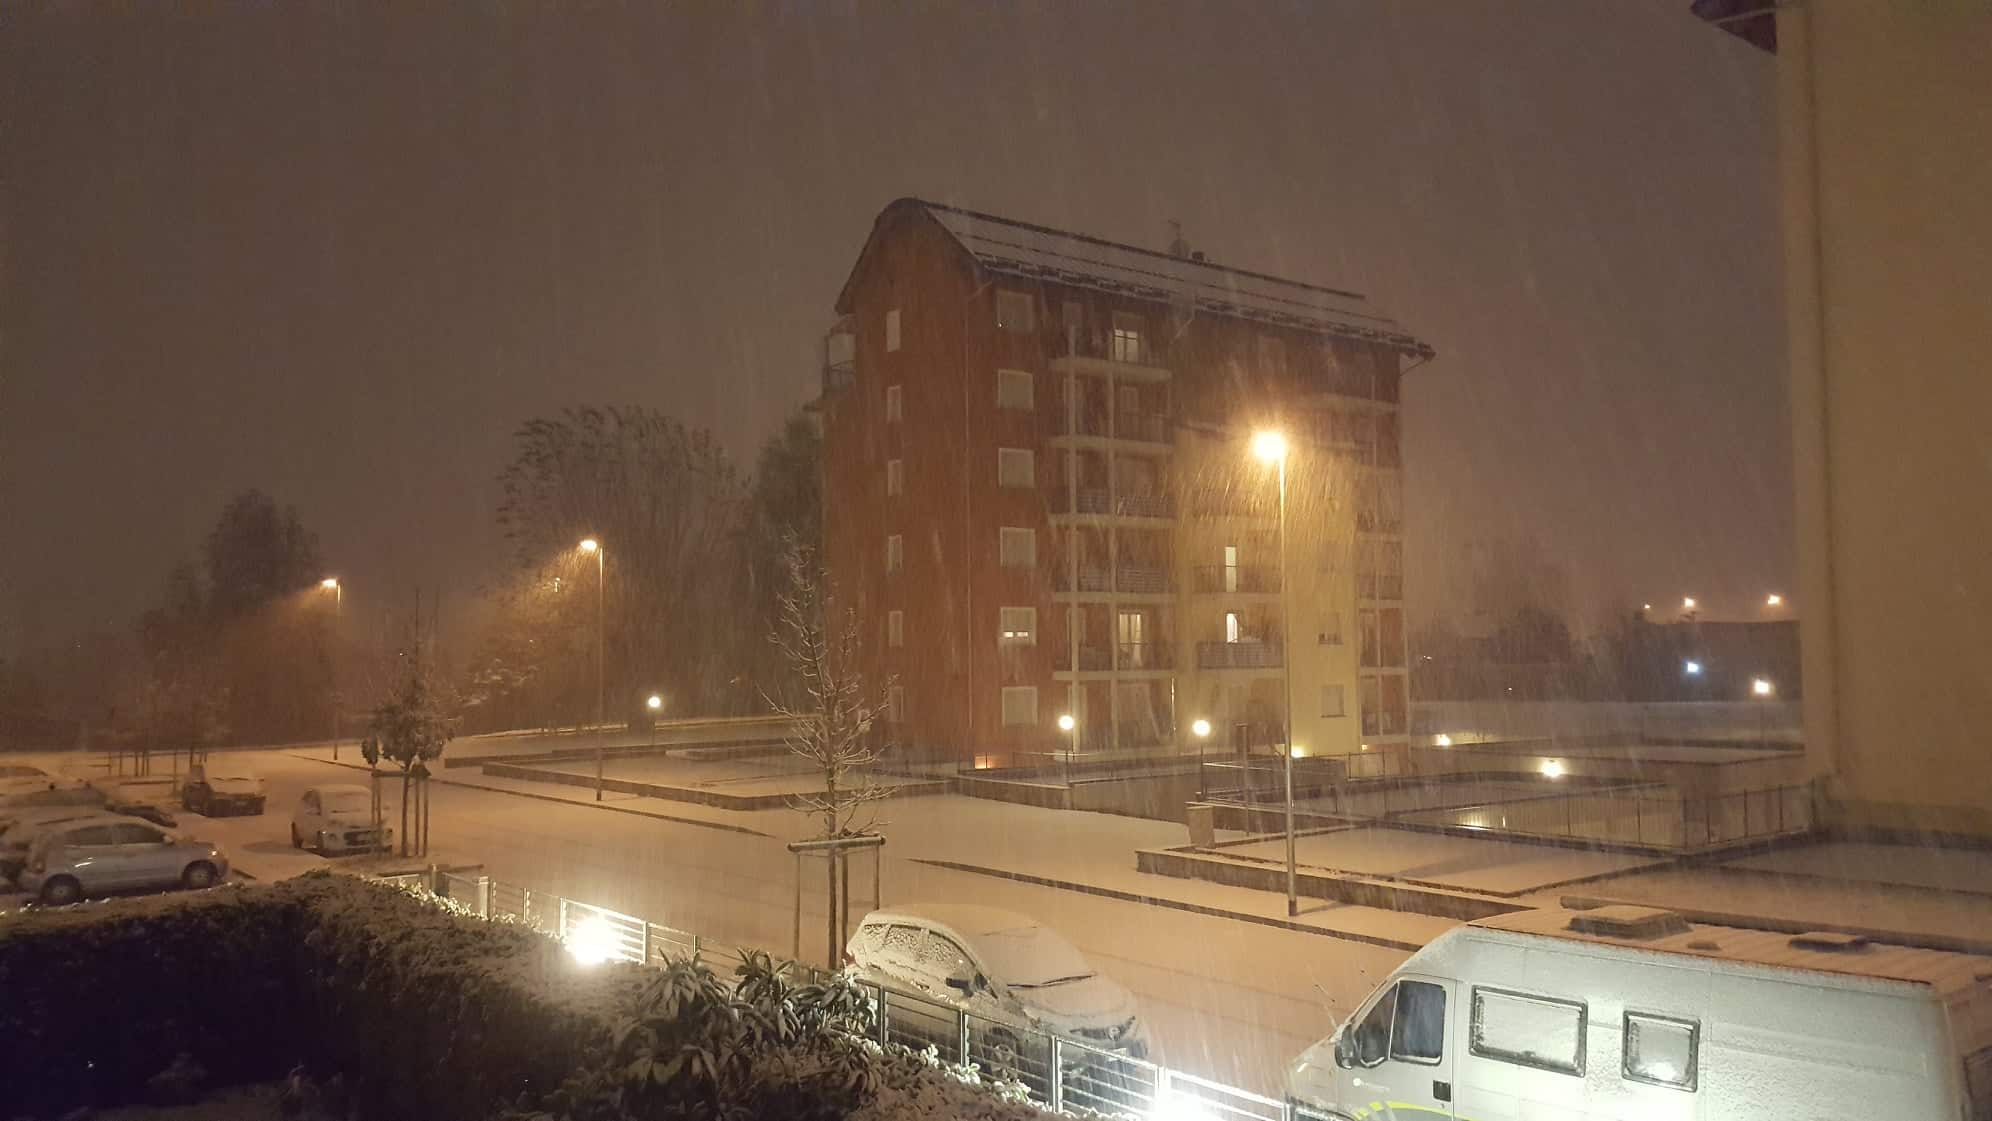 Meteo: Cuneo, è arrivata la neve! (GUARDA I VIDEO) - www ...